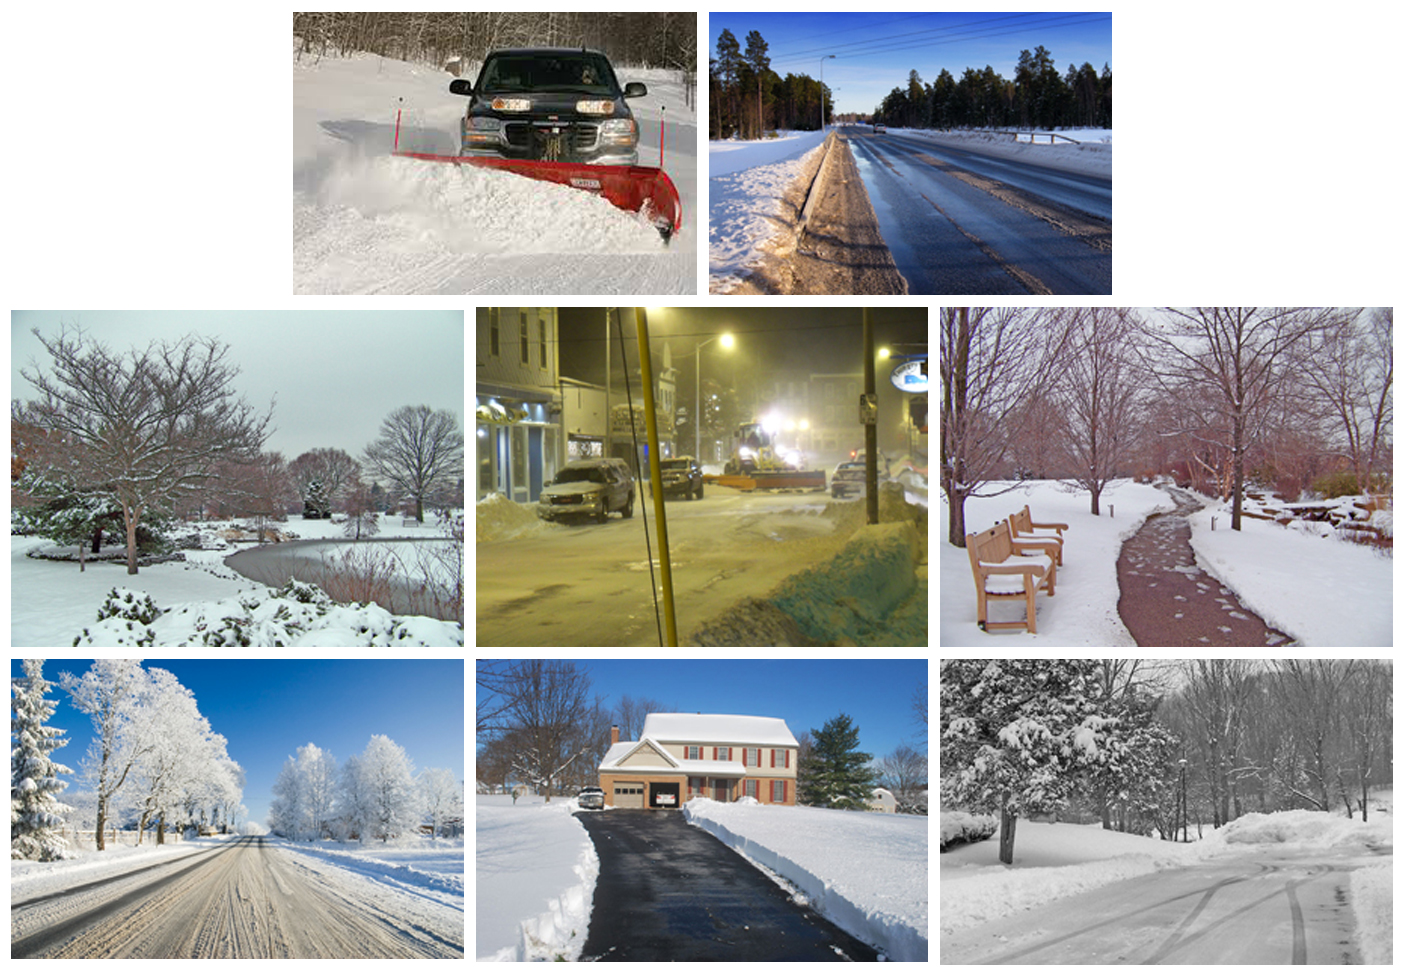 snow removal plowing photo gallery